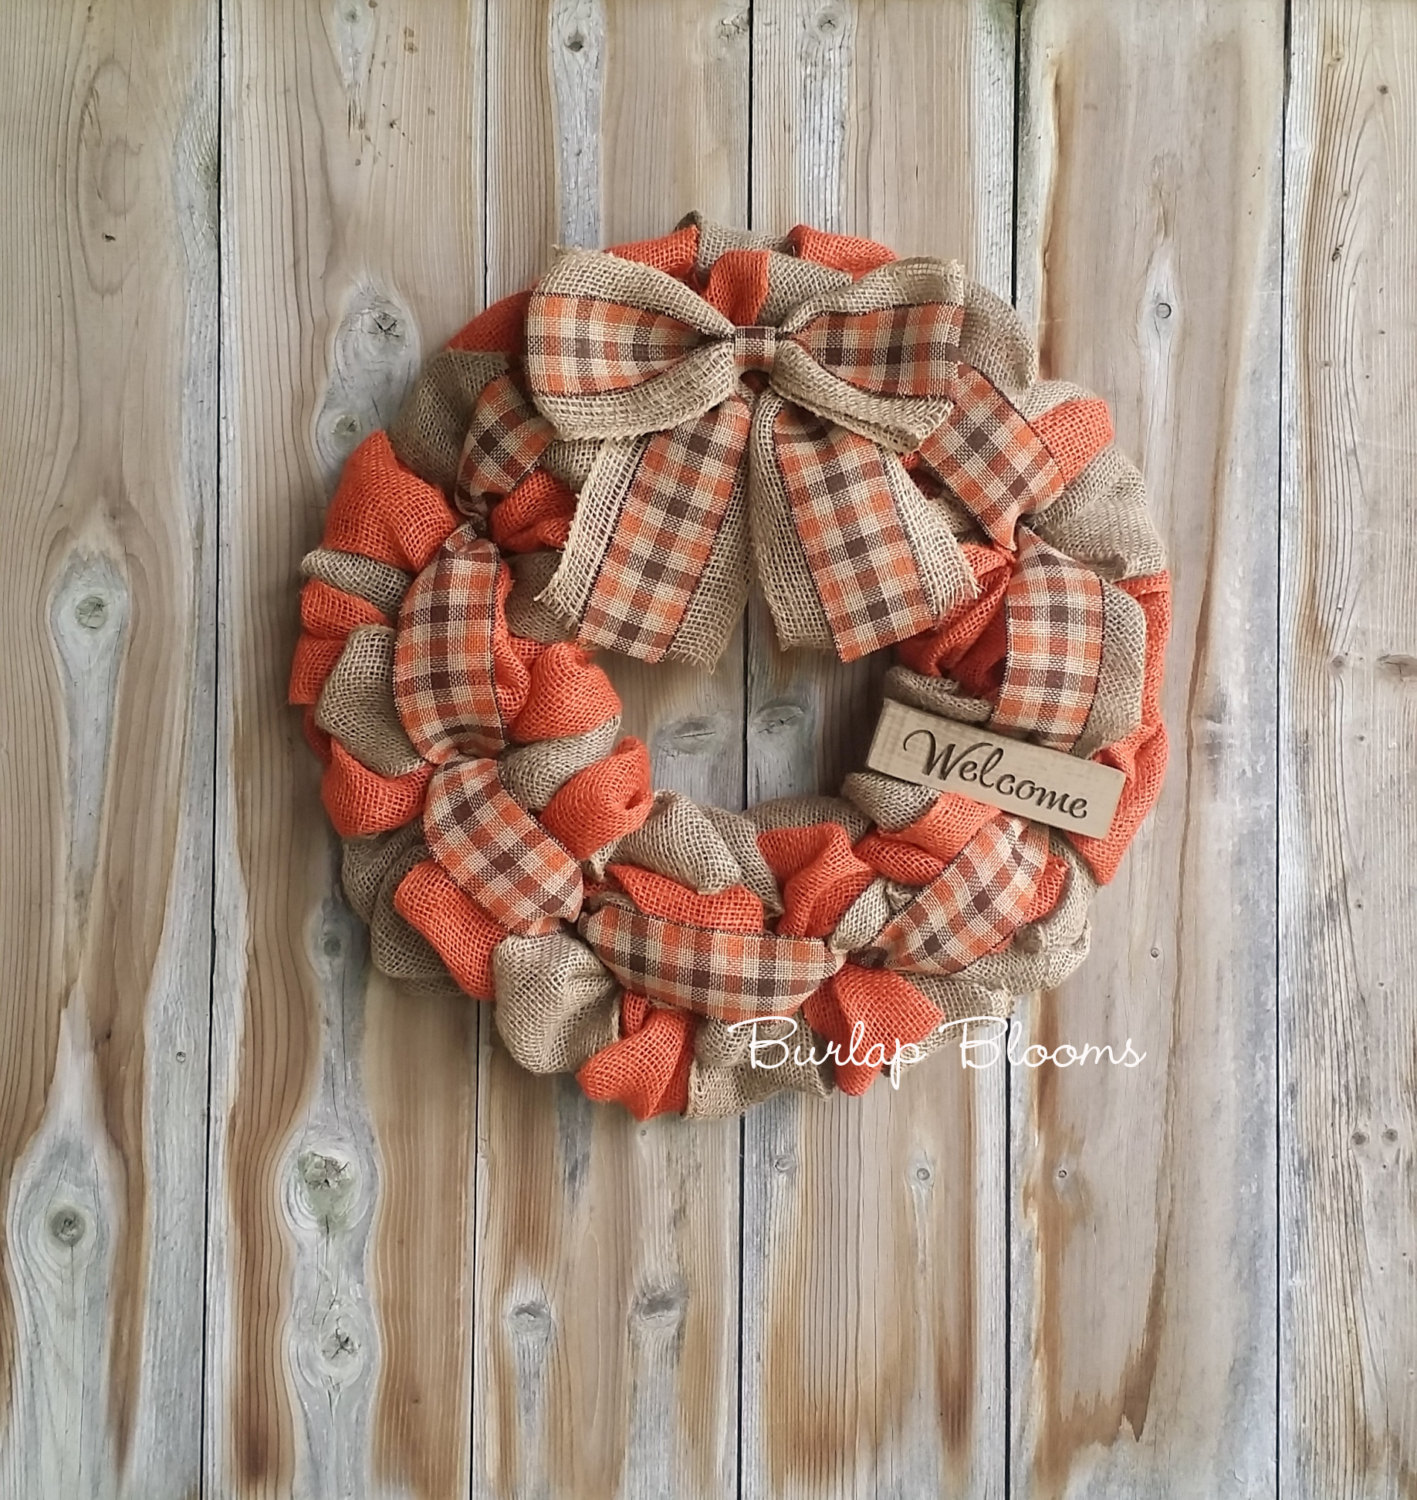 Great Ways To Use Burlap In Home Decor: 16 Whimsical Handmade Thanksgiving Wreath Designs For Your